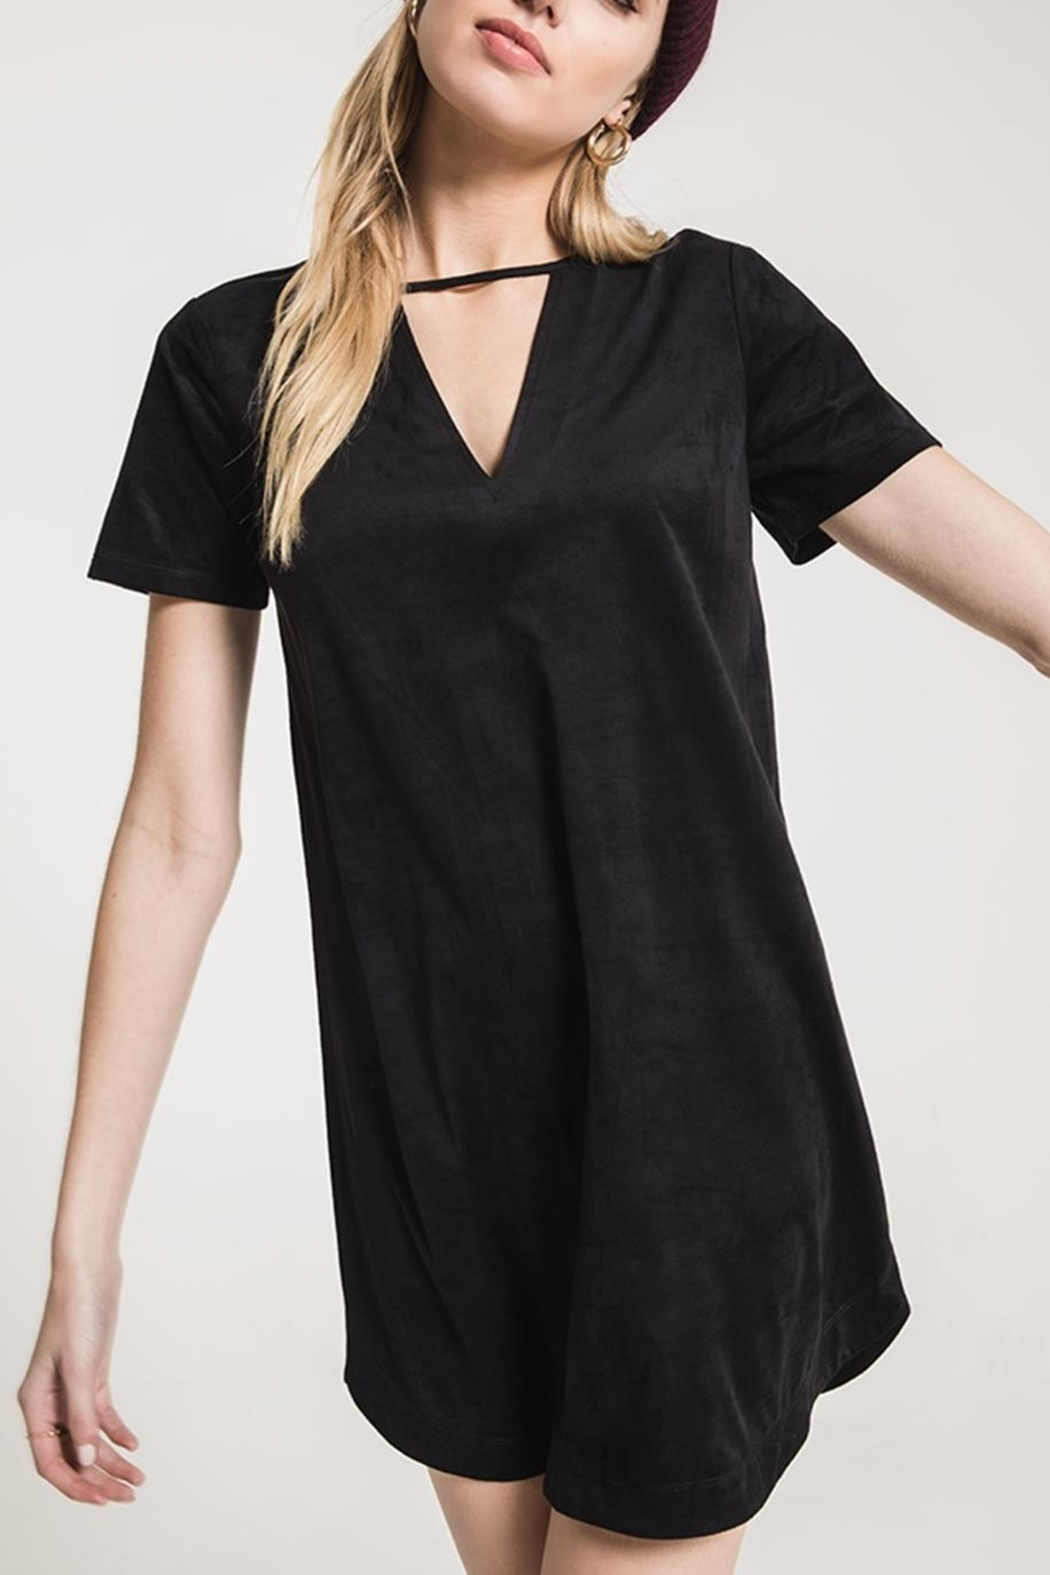 z supply Suede Cut-Out Dress - Main Image